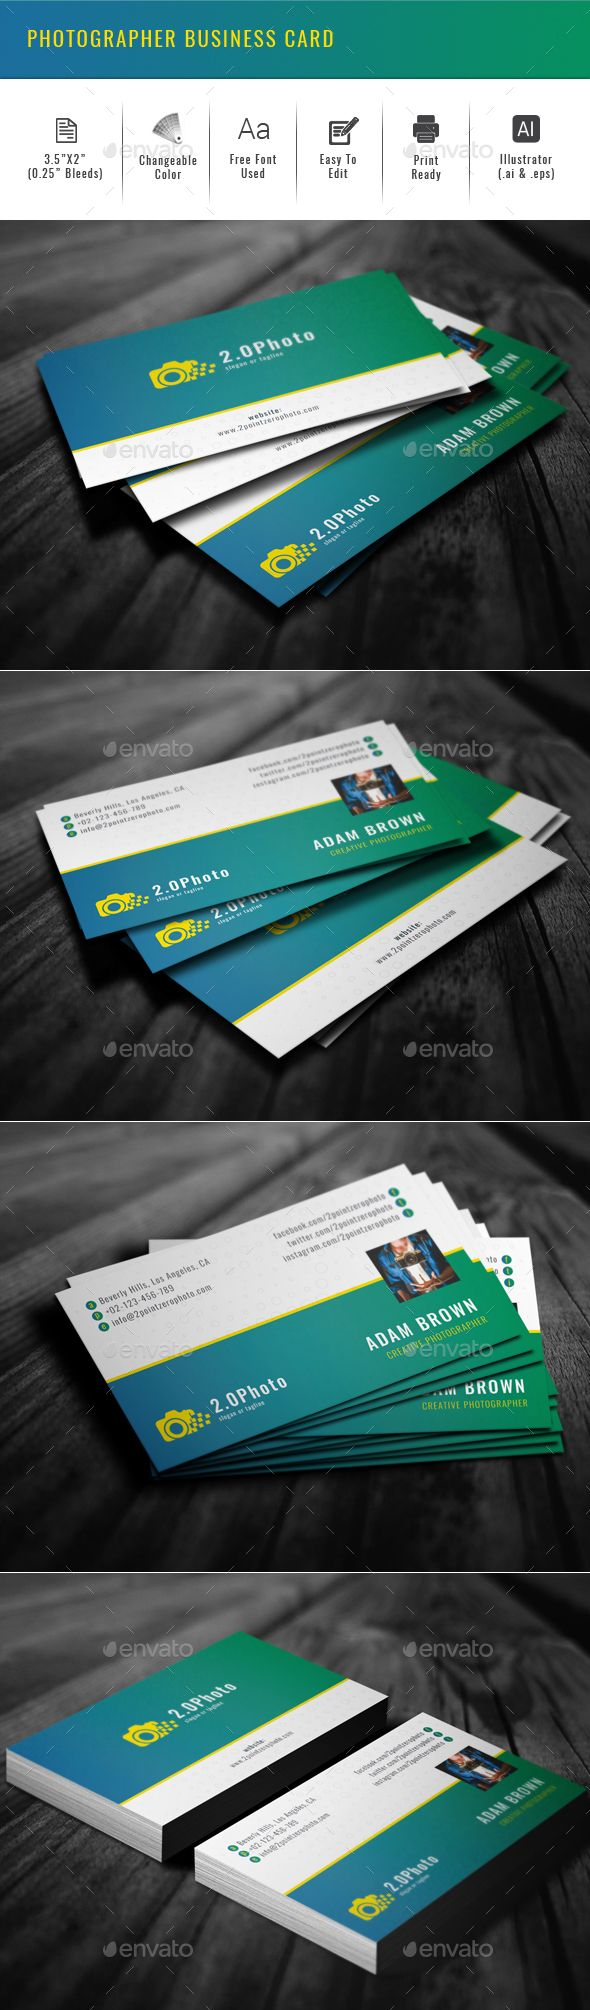 Photographer business card photographer business card template vector eps ai illustrator reheart Image collections